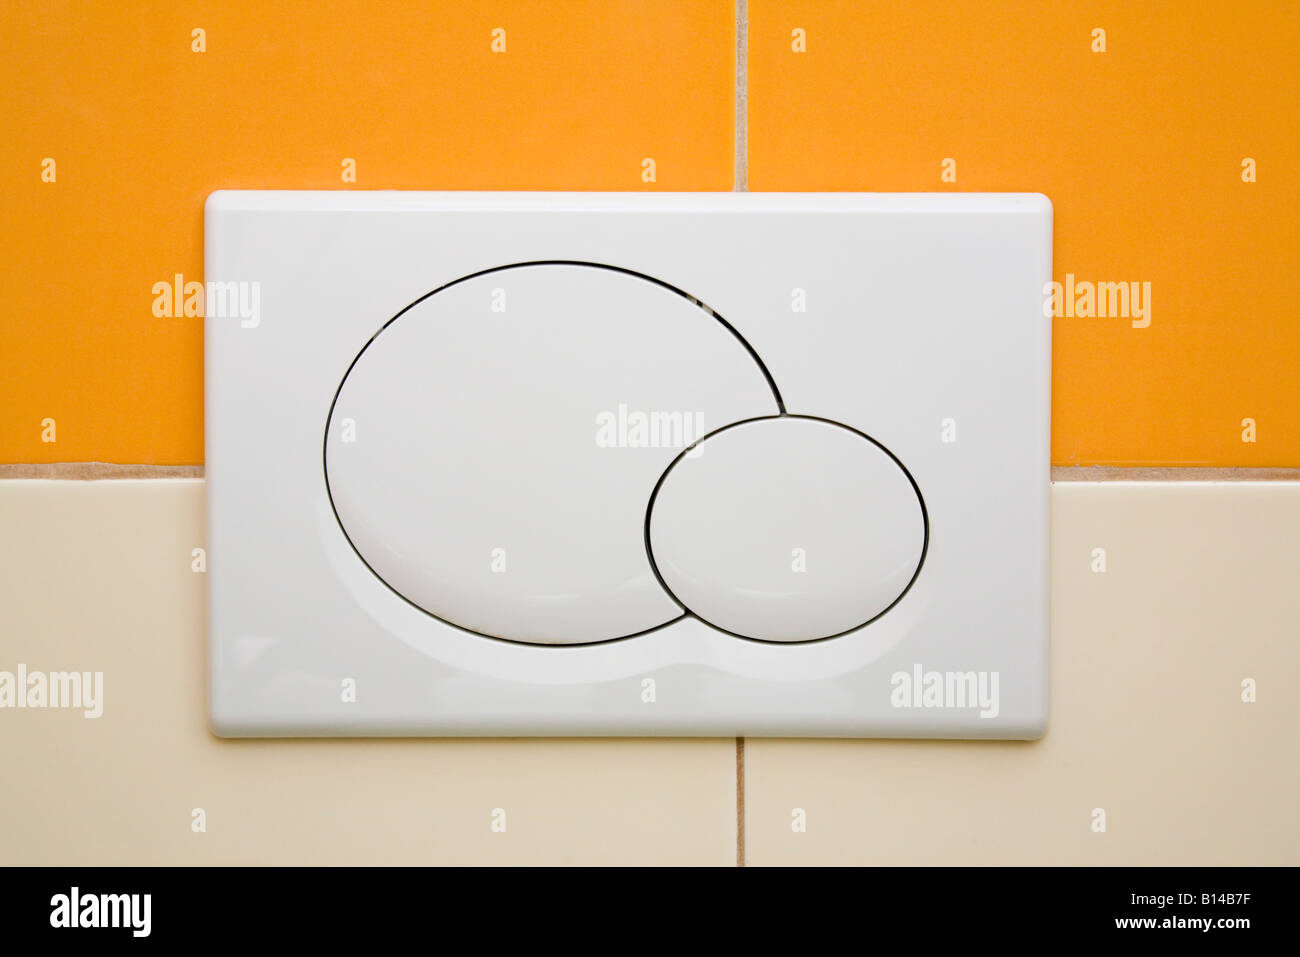 Dual toilet flush with dual economy flush button on tiled wall in public convenience WC - Stock Image